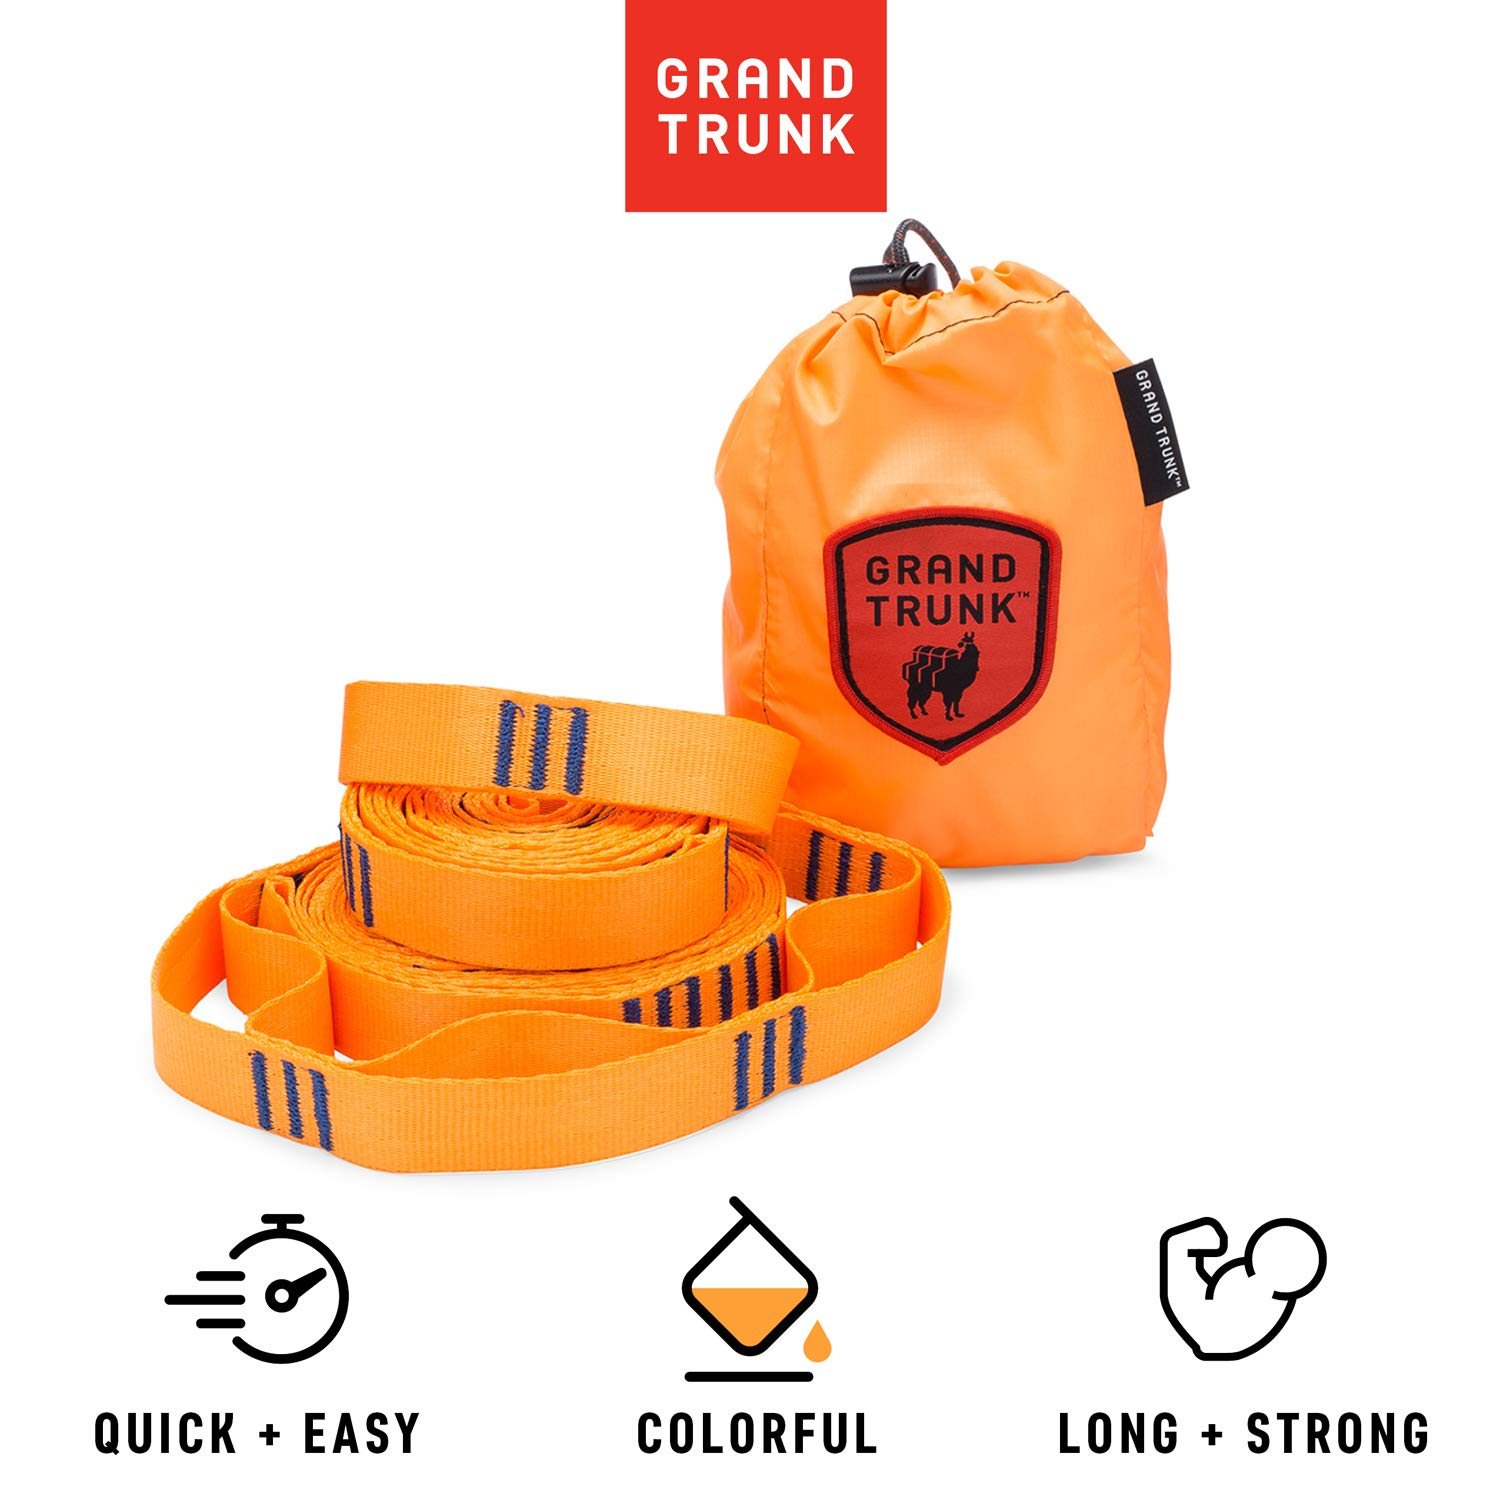 Grand Trunk Tree Trunk Straps - Hammock Suspension System with Colorful Adjustable Hammock Straps